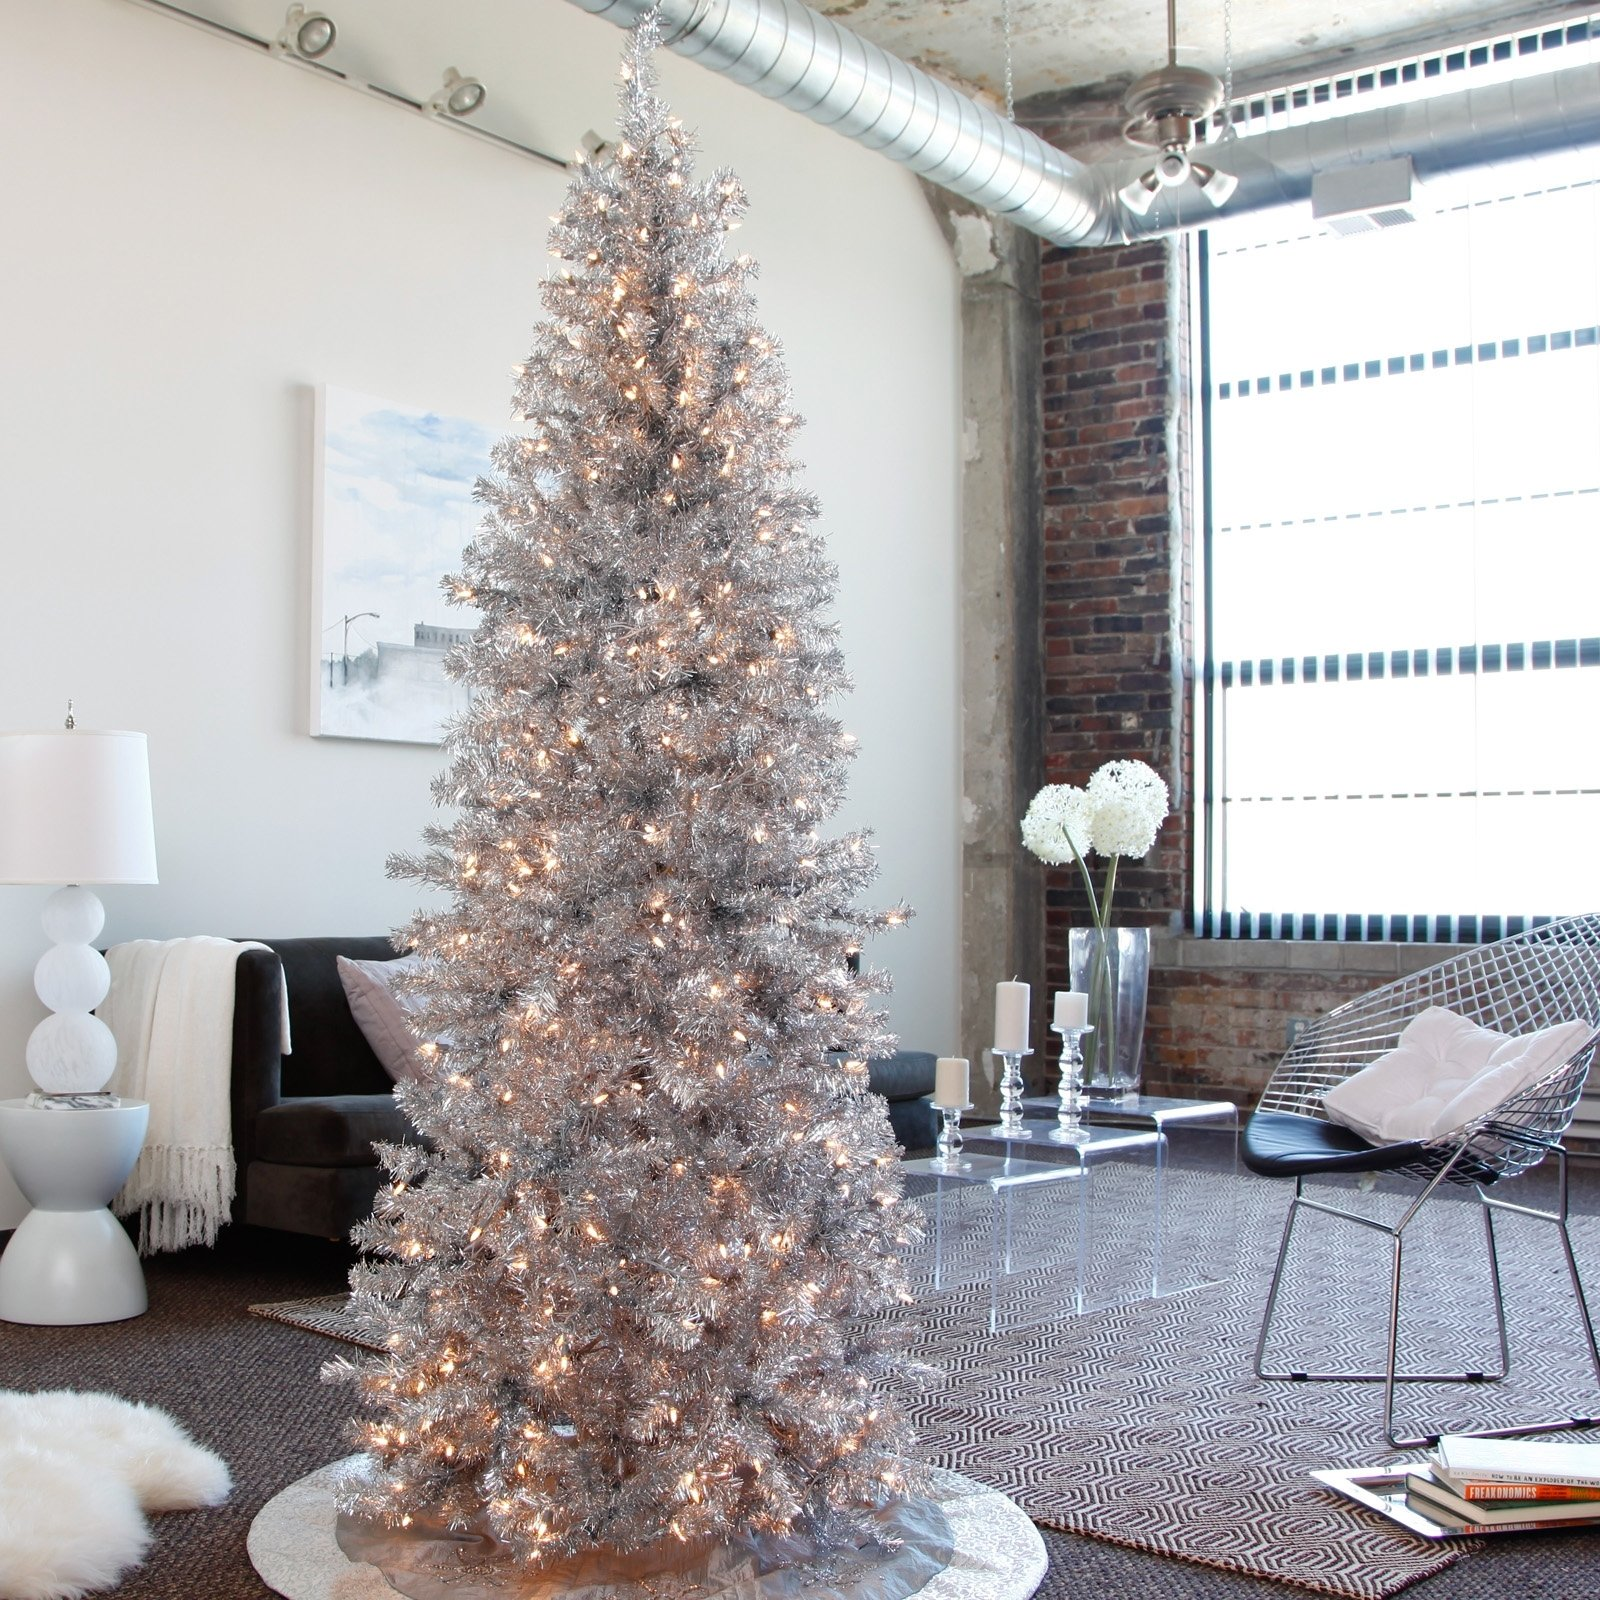 10 Perfect Modern Christmas Tree Decorating Ideas silver christmas tree ideas digsdigs idolza 2020